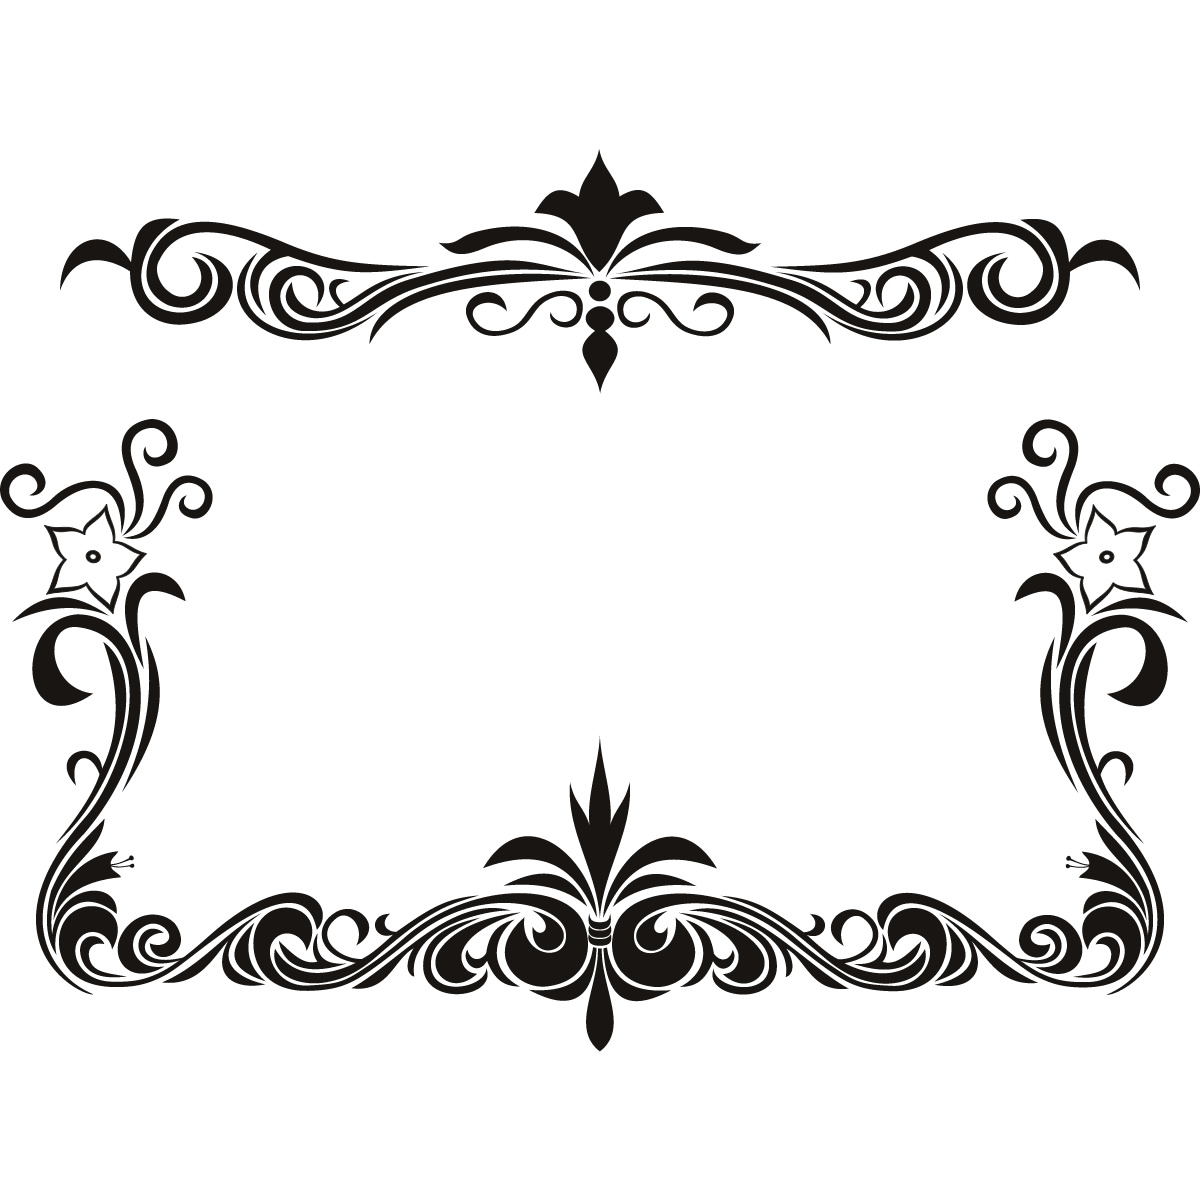 Free Page Border Designs For Projects With Flowers